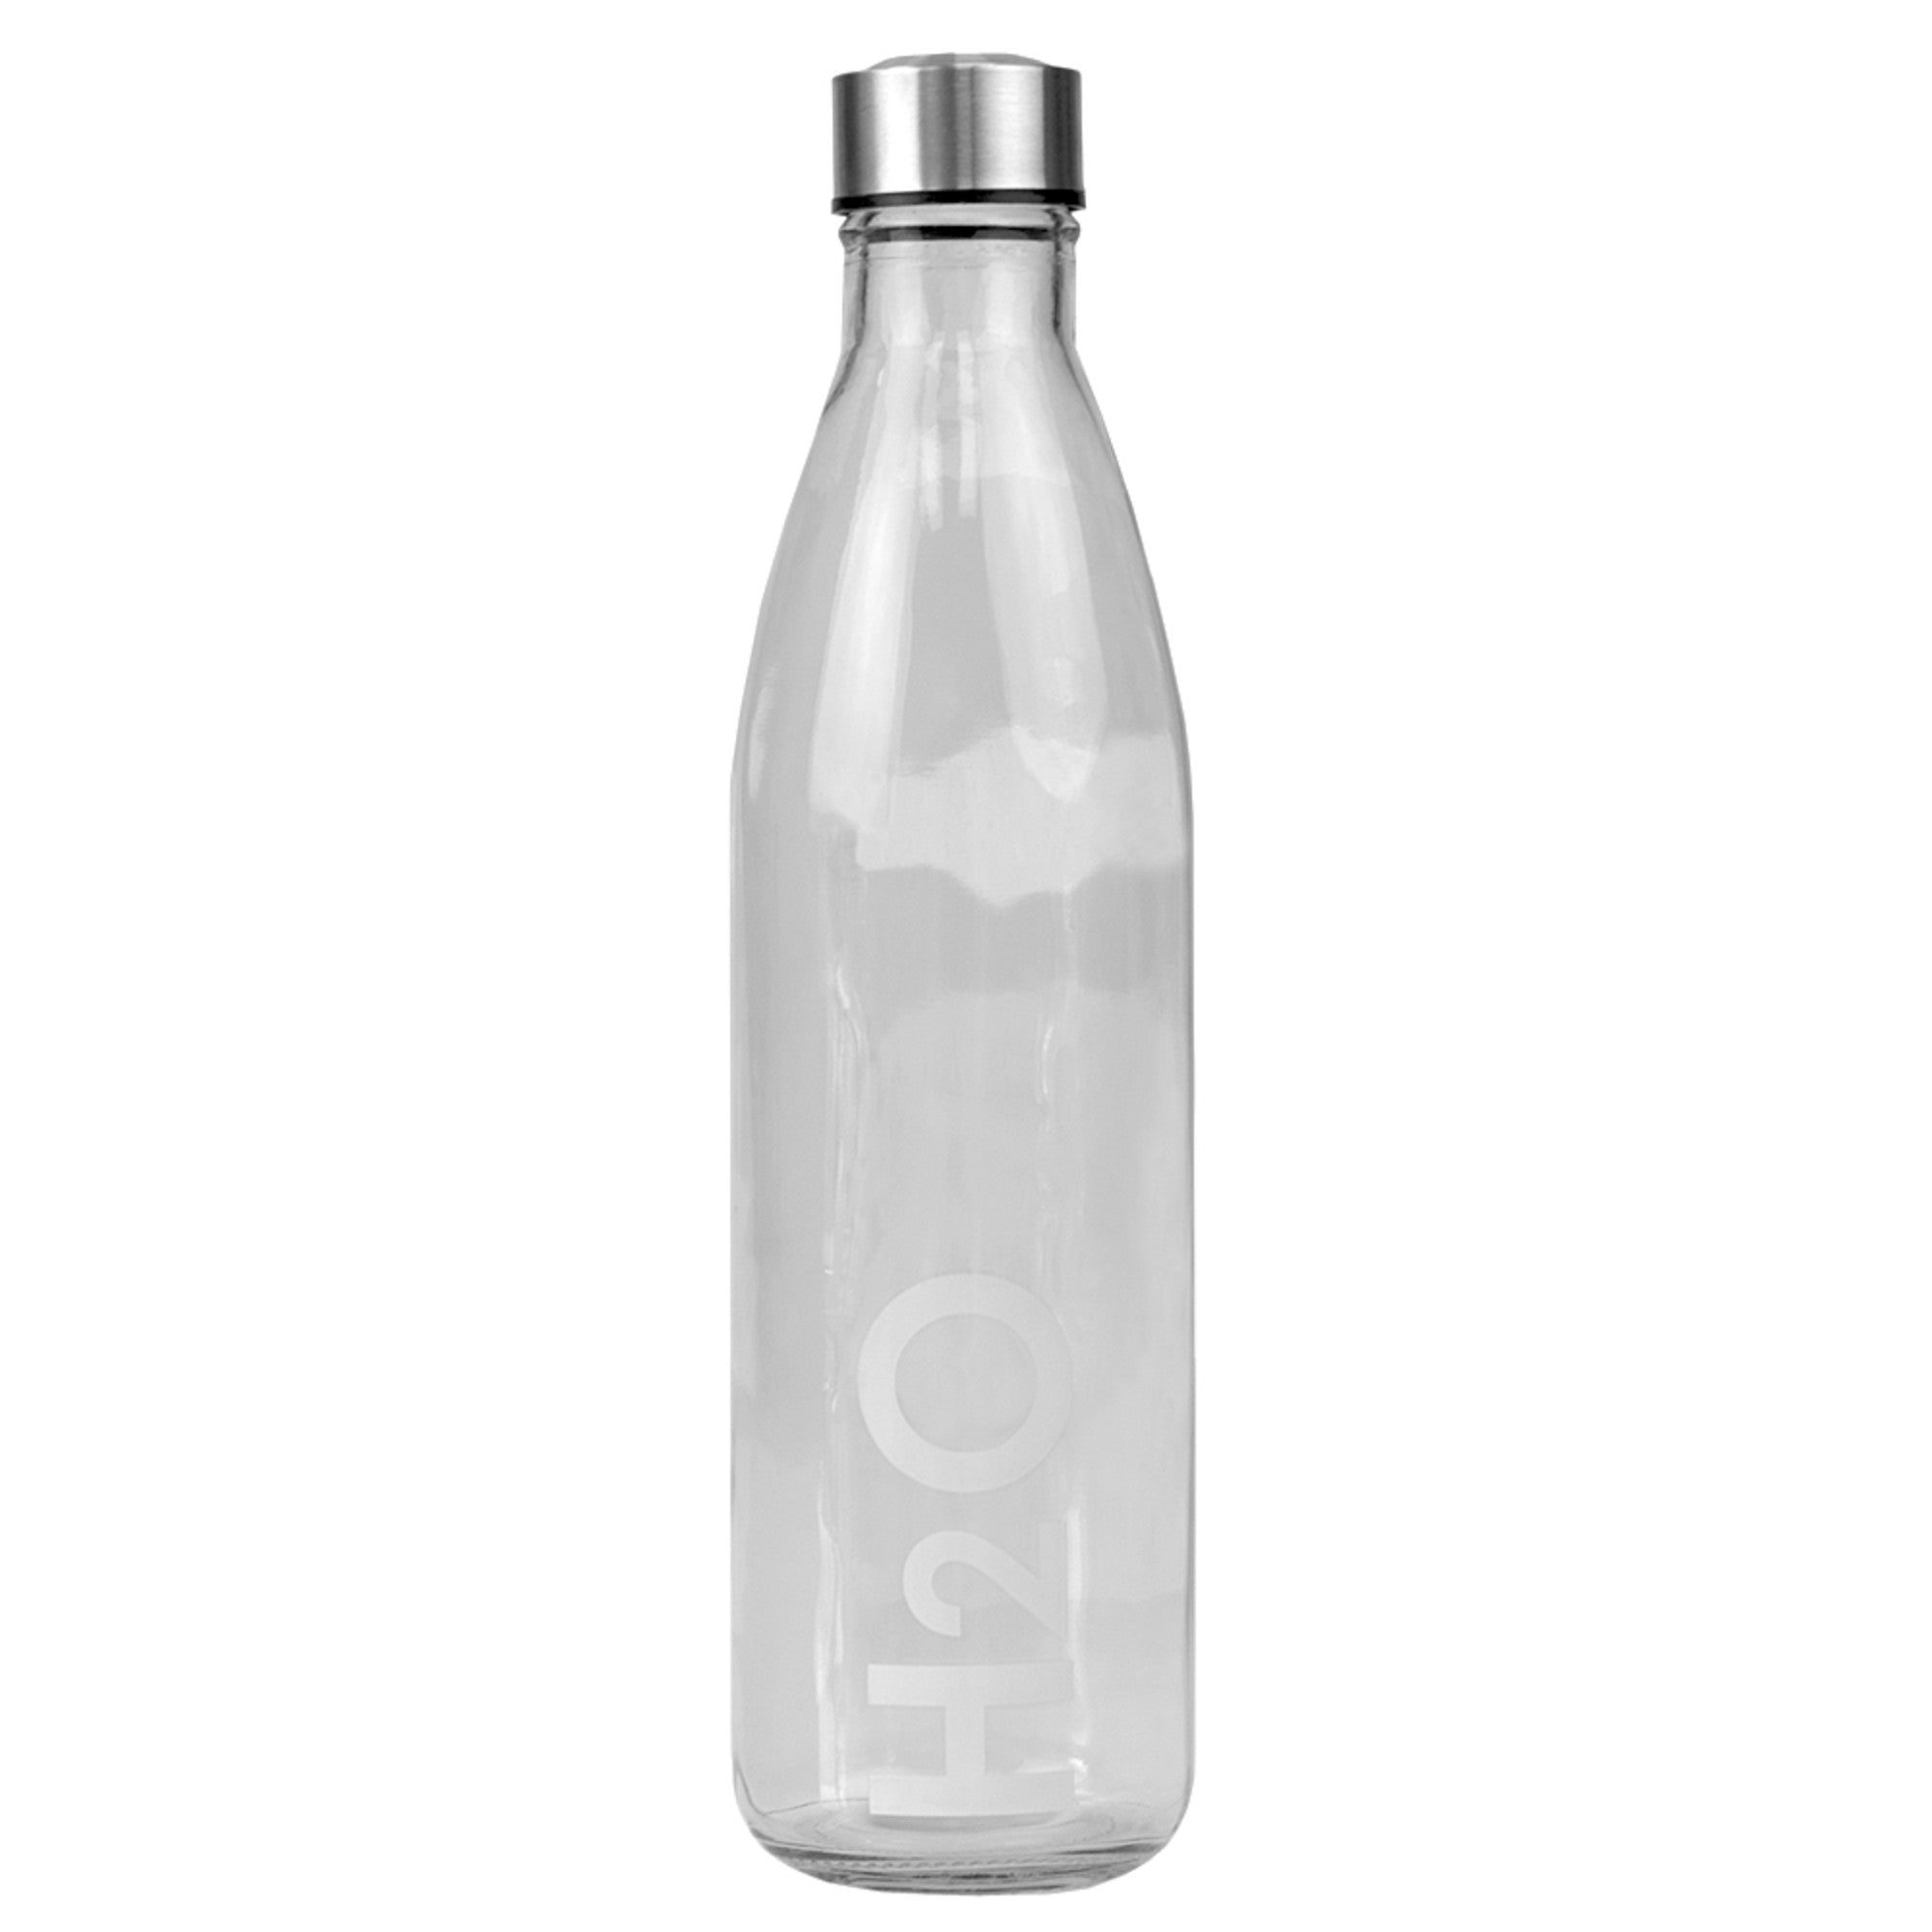 Home Basics H2O Clear 32 oz. Glass Travel Water Bottle with Easy Twist on Leak Proof Steel Cap, White - White